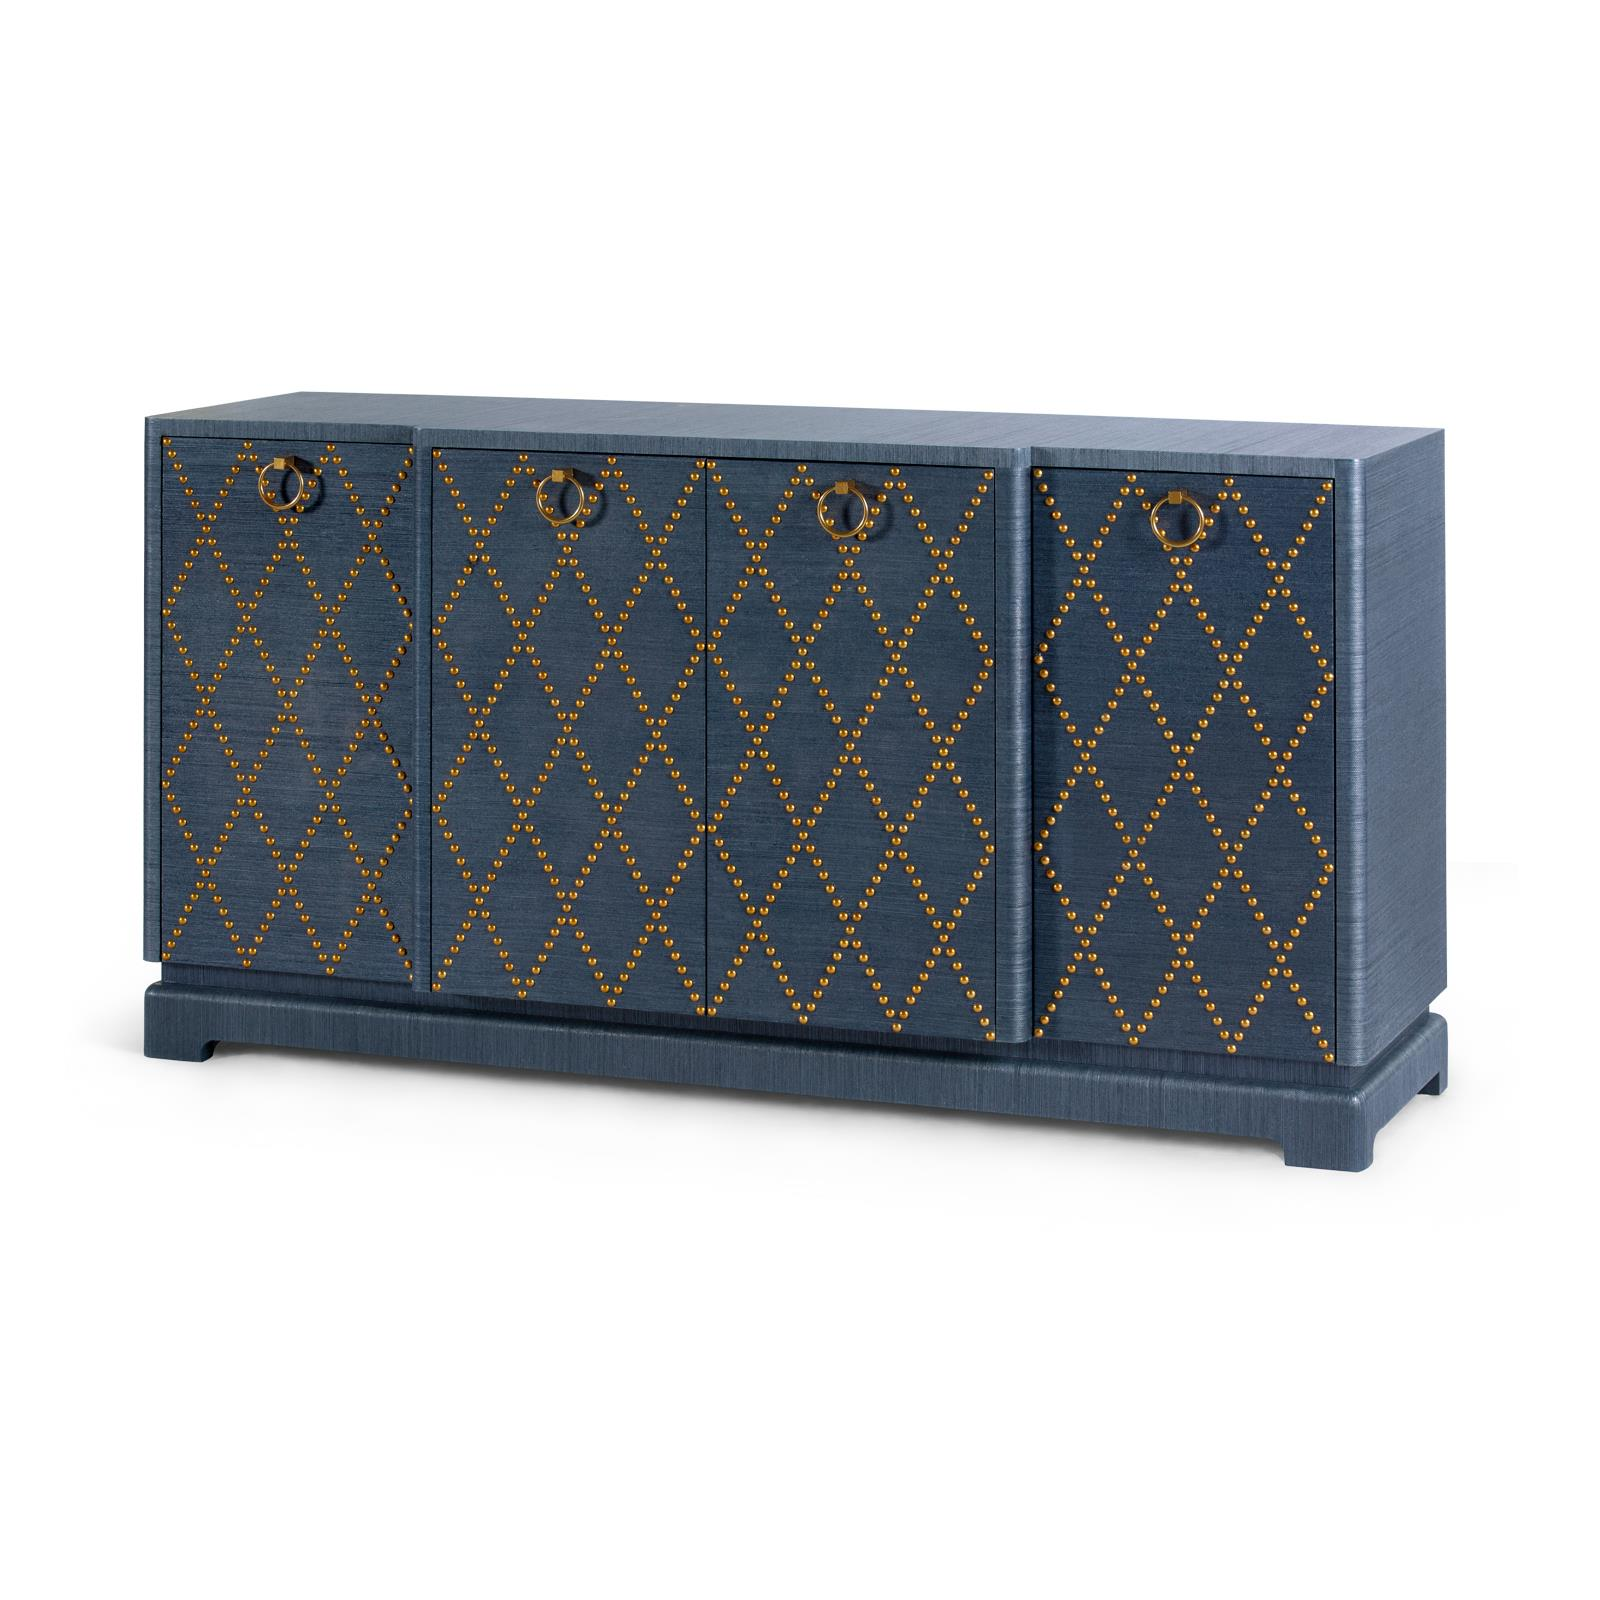 Cabinet in navy with brass nailhead diamond pattern